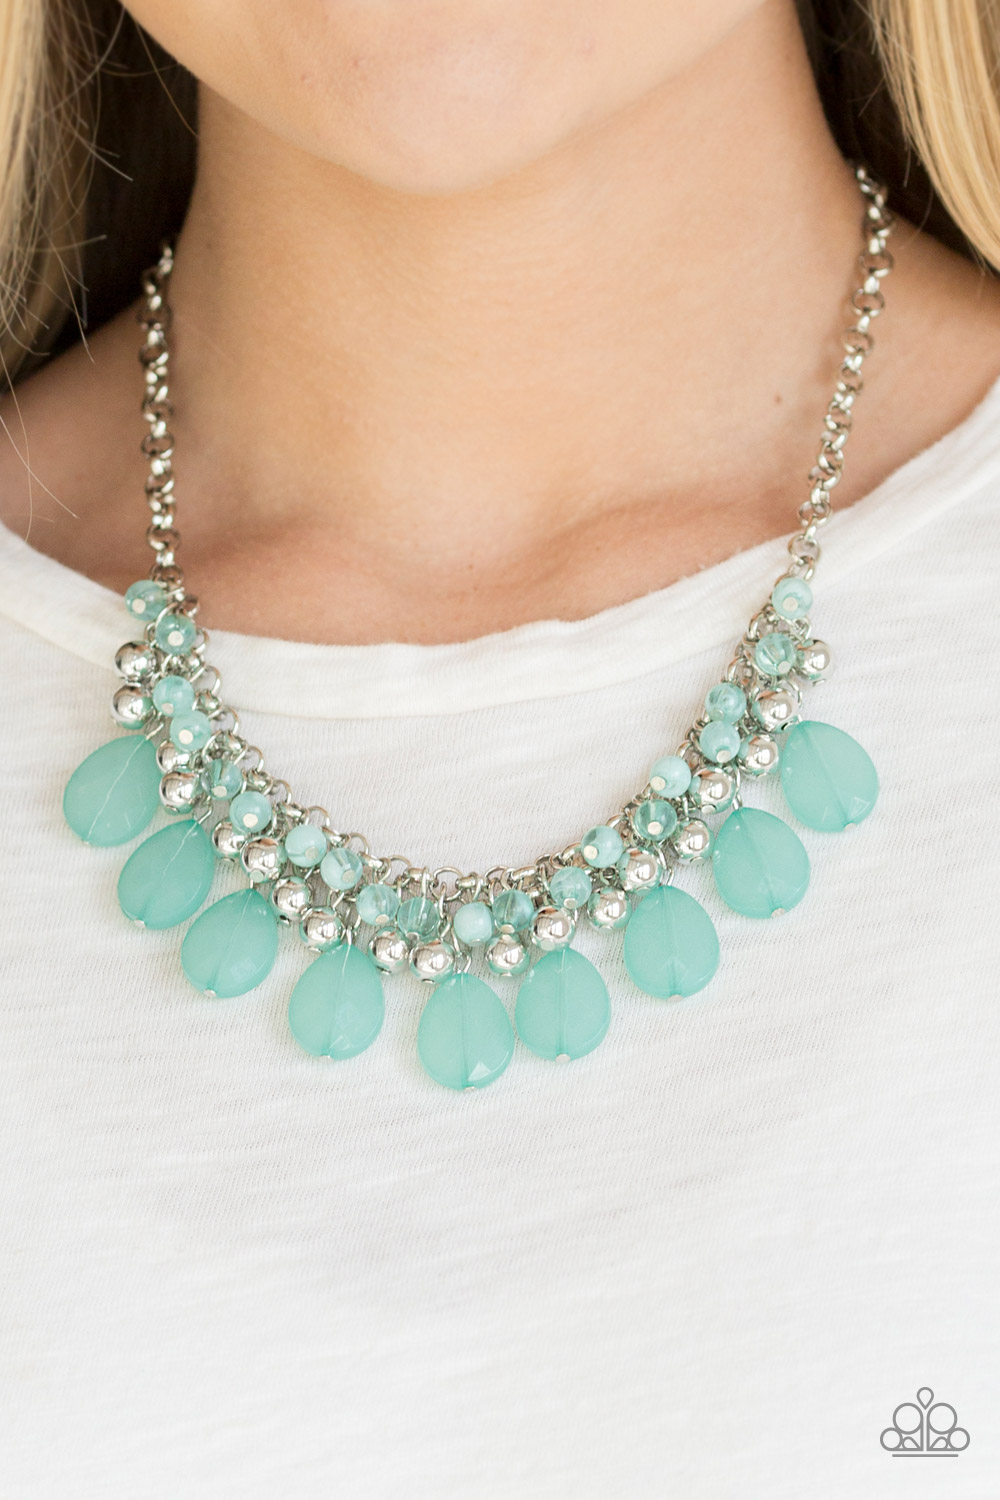 Trending Tropicana - Green Necklace by Paparazzi $5.00 www.my-bling.com